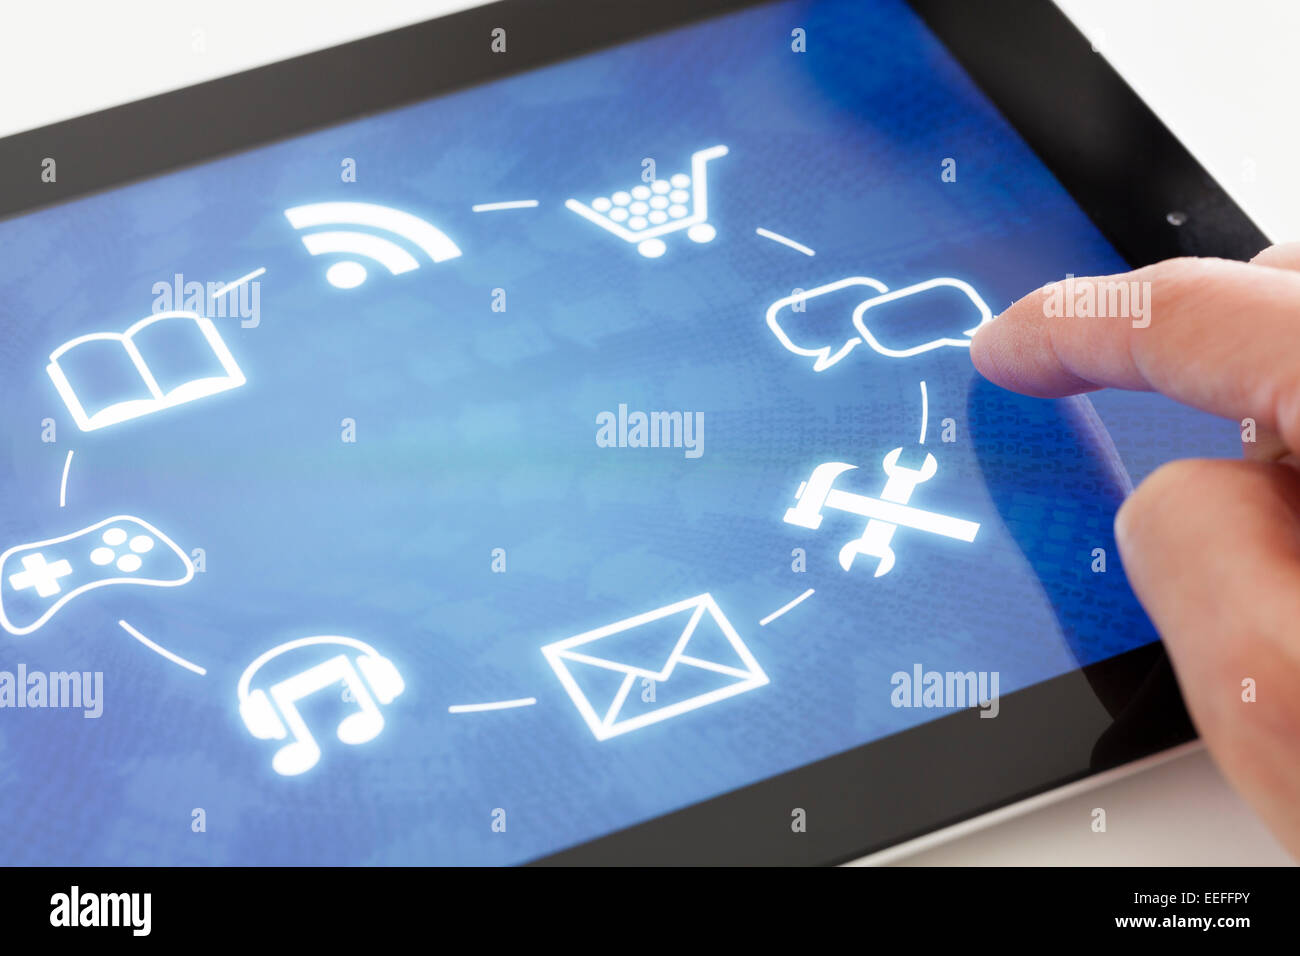 Clicking on a tablet with touchscreen interface - Stock Image